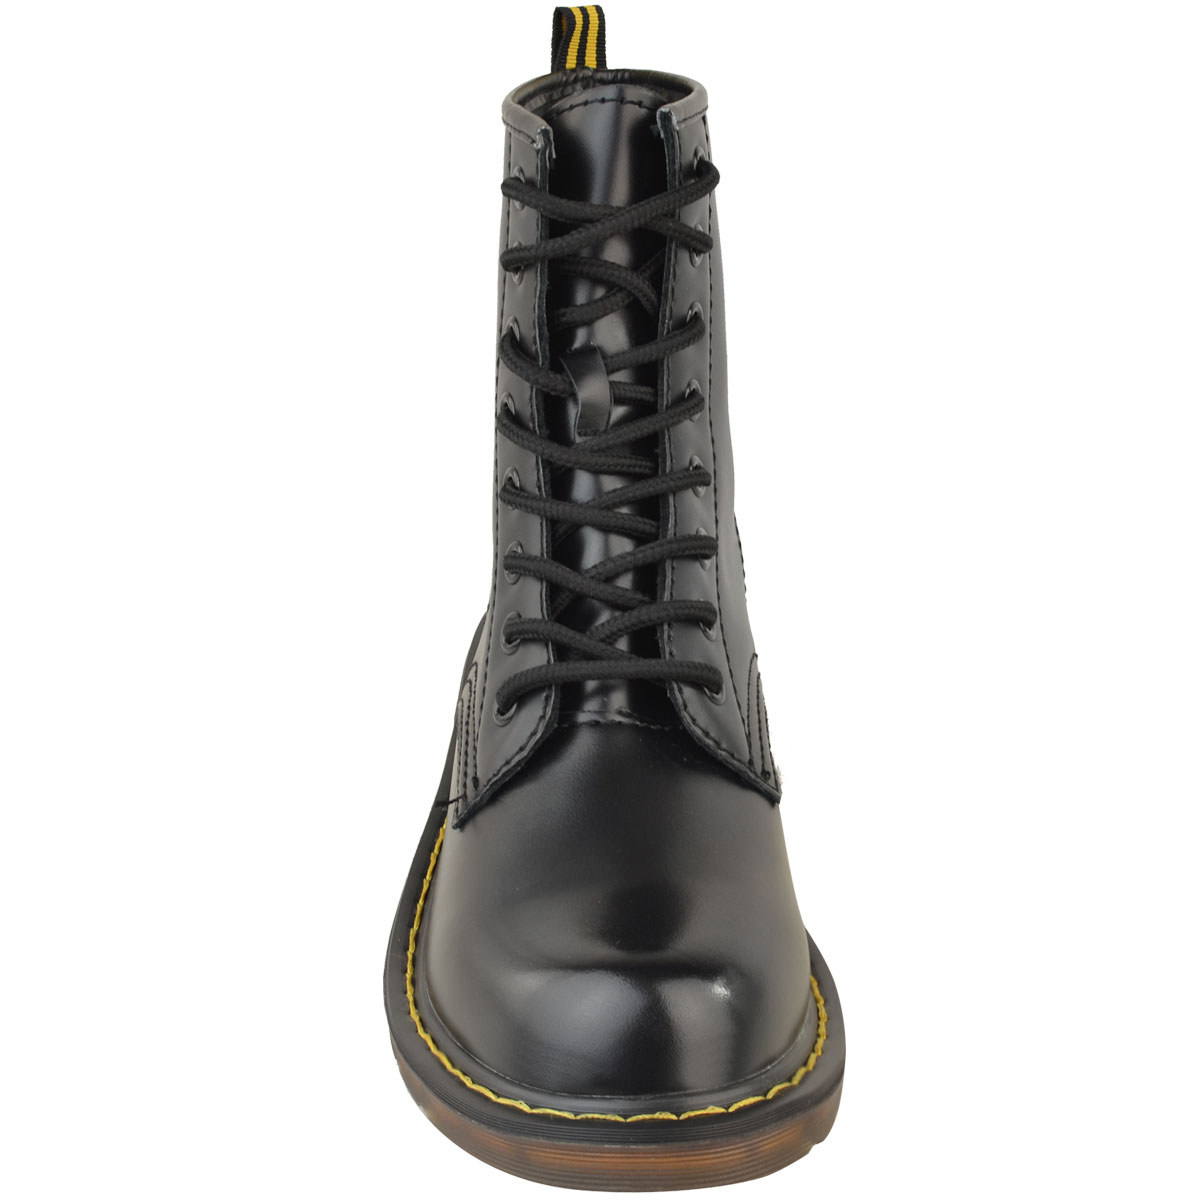 Womens-Ladies-Doc-Ankle-Boots-Low-Flat-Heel-Lace-Up-Worker-Army-Black-Goth-Size thumbnail 6